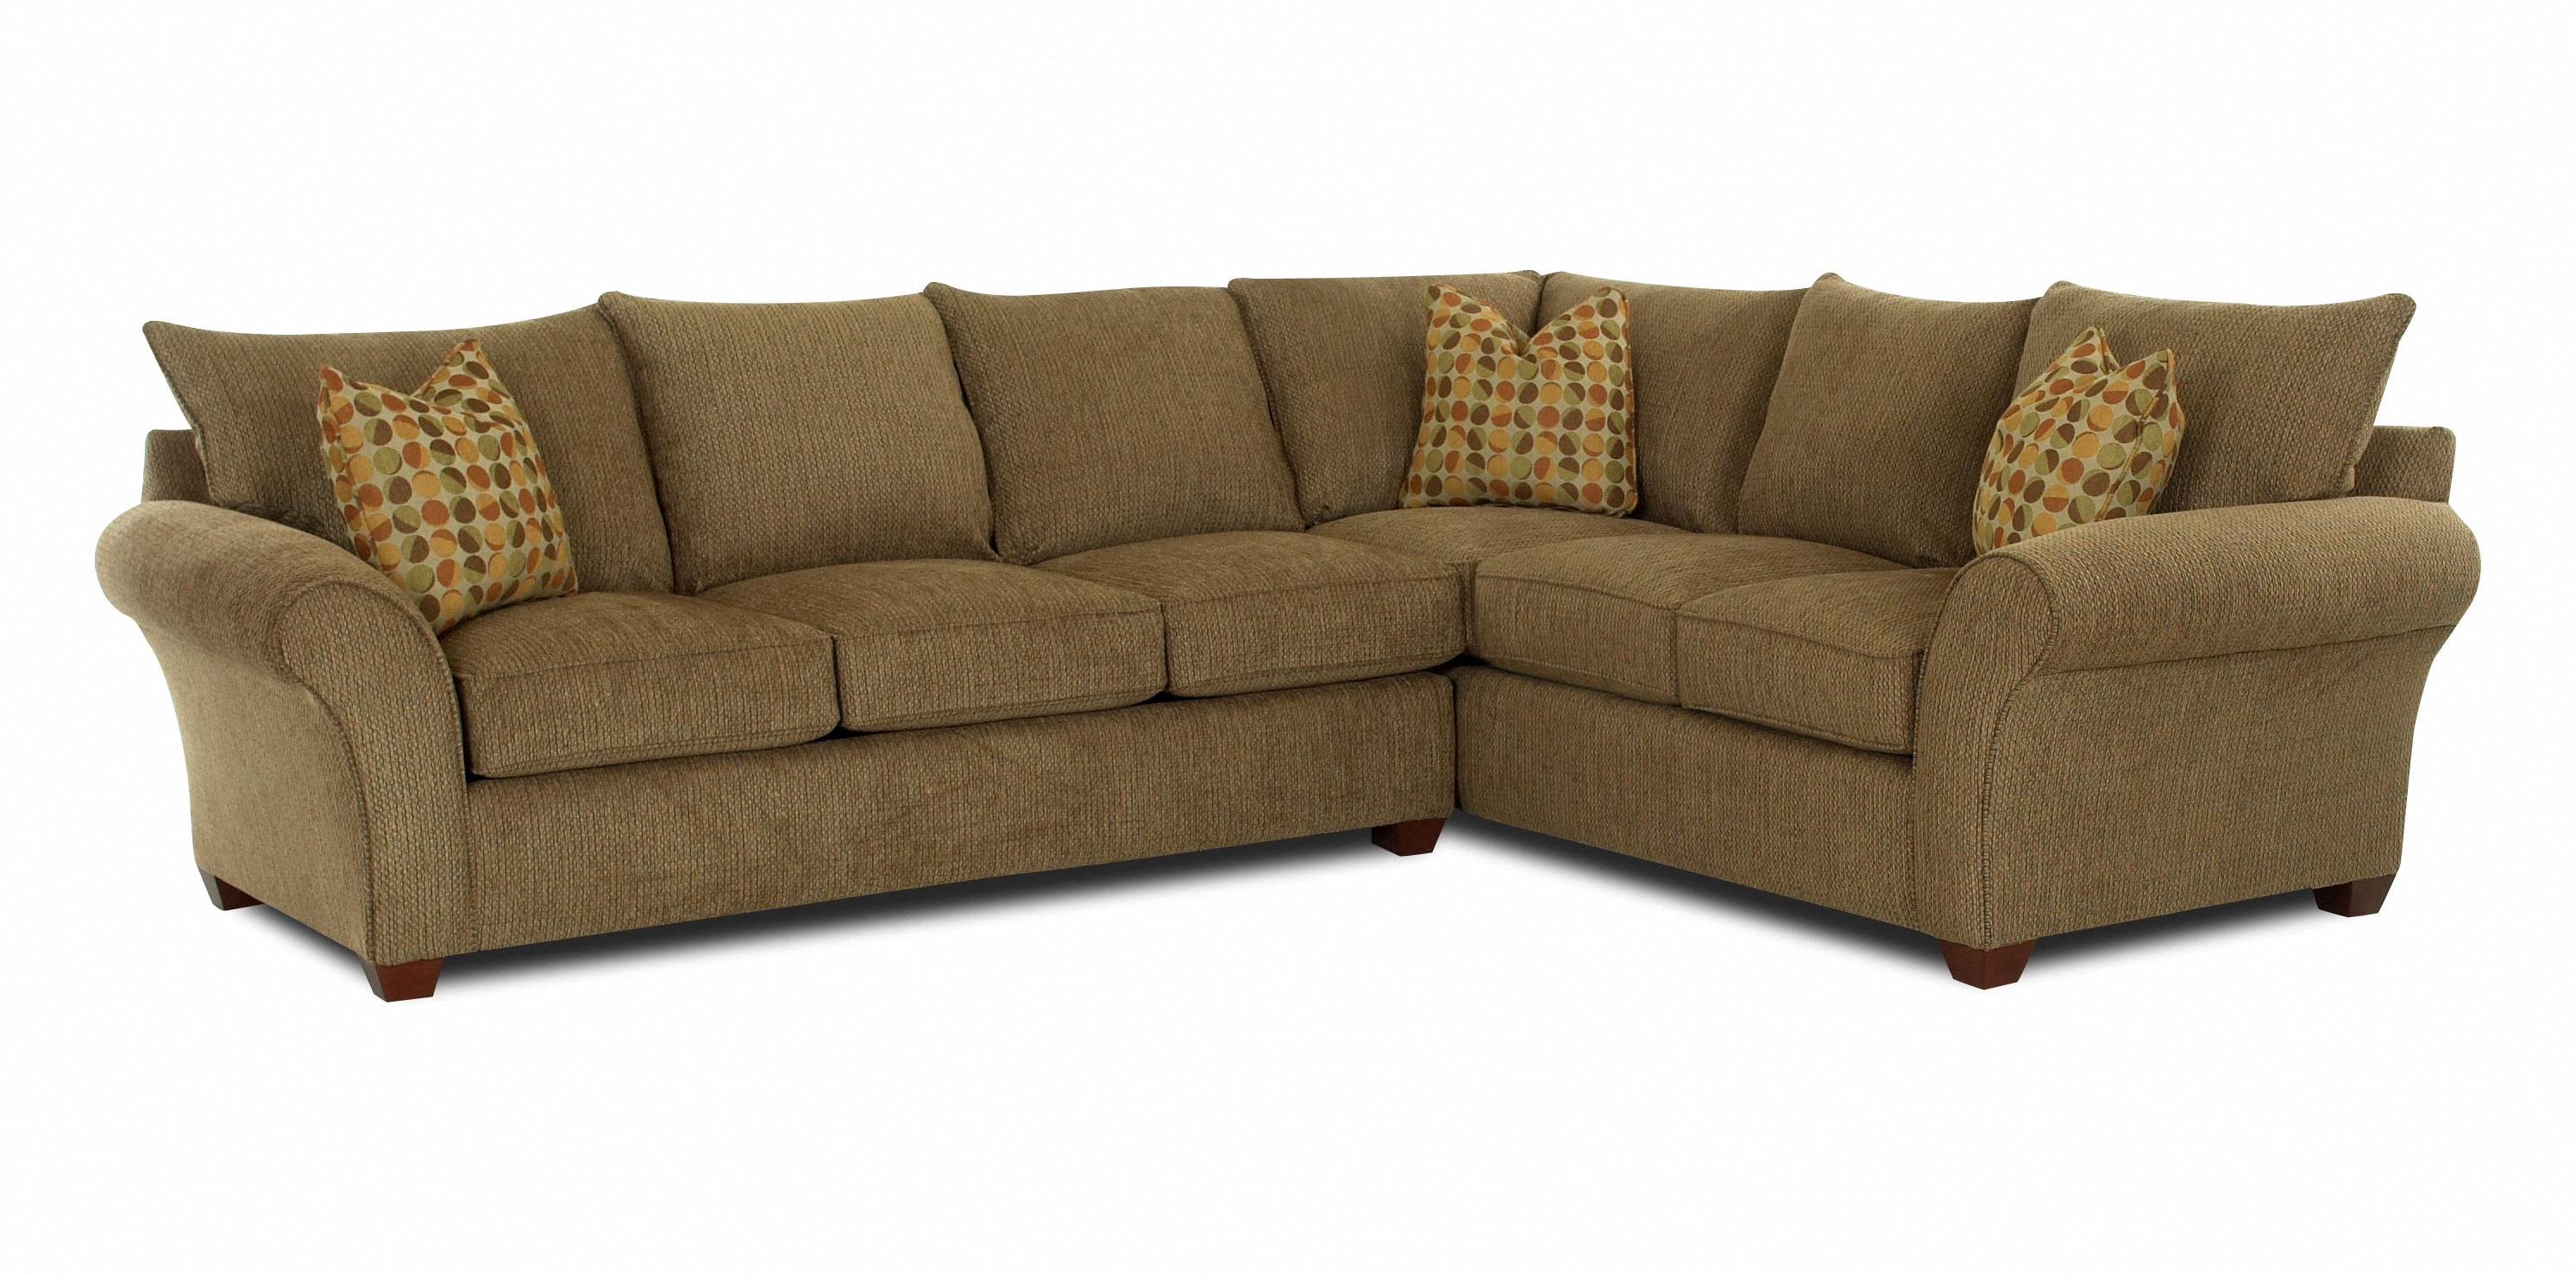 Fletcher Transitional 2 Piece Sectional Sofa by Klaussner at Johnny Janosik